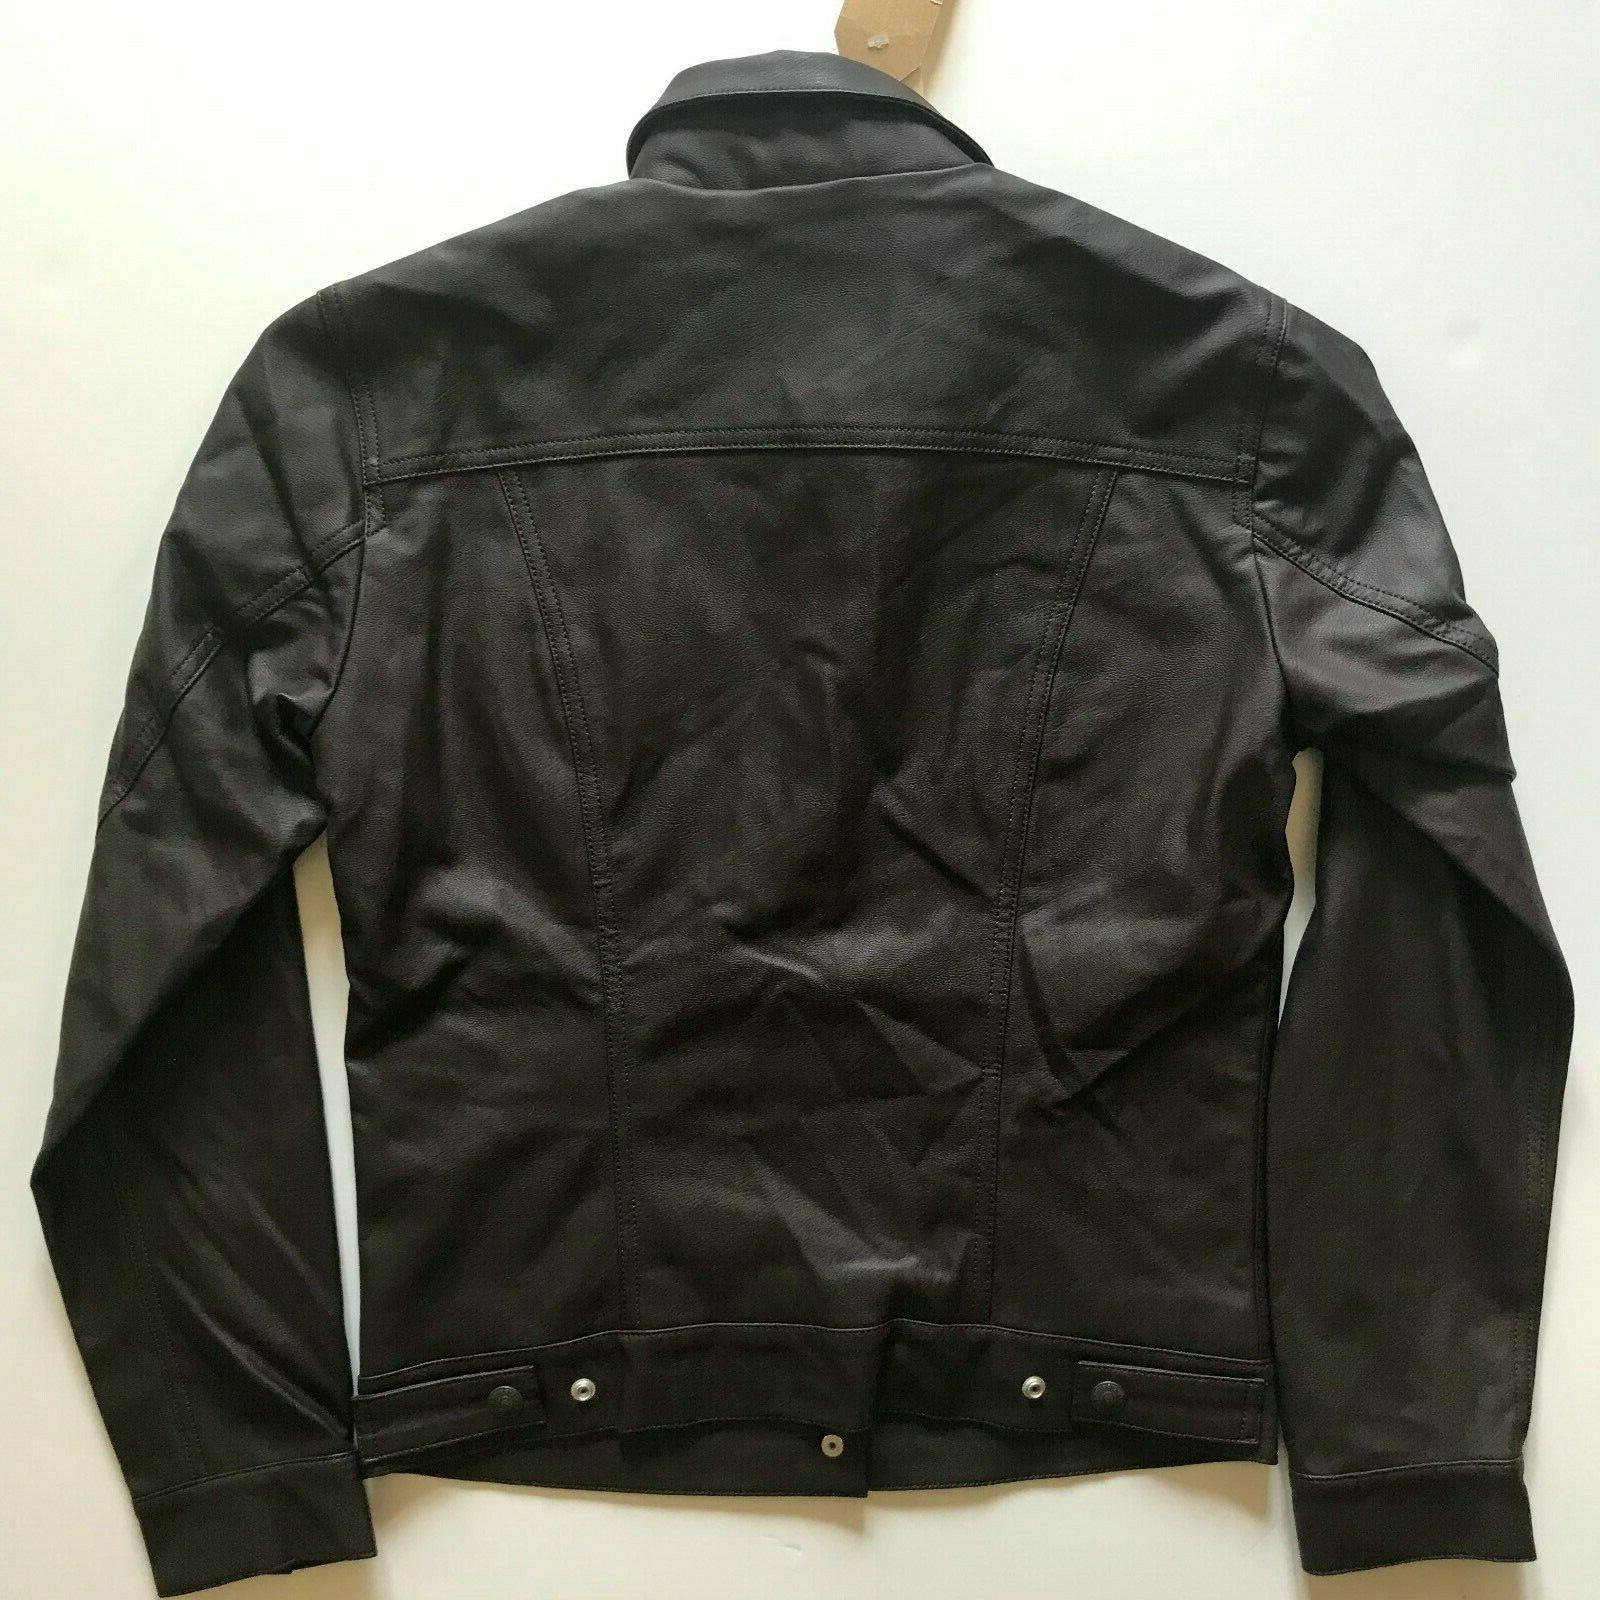 NWT Jacket Outerwear Size S